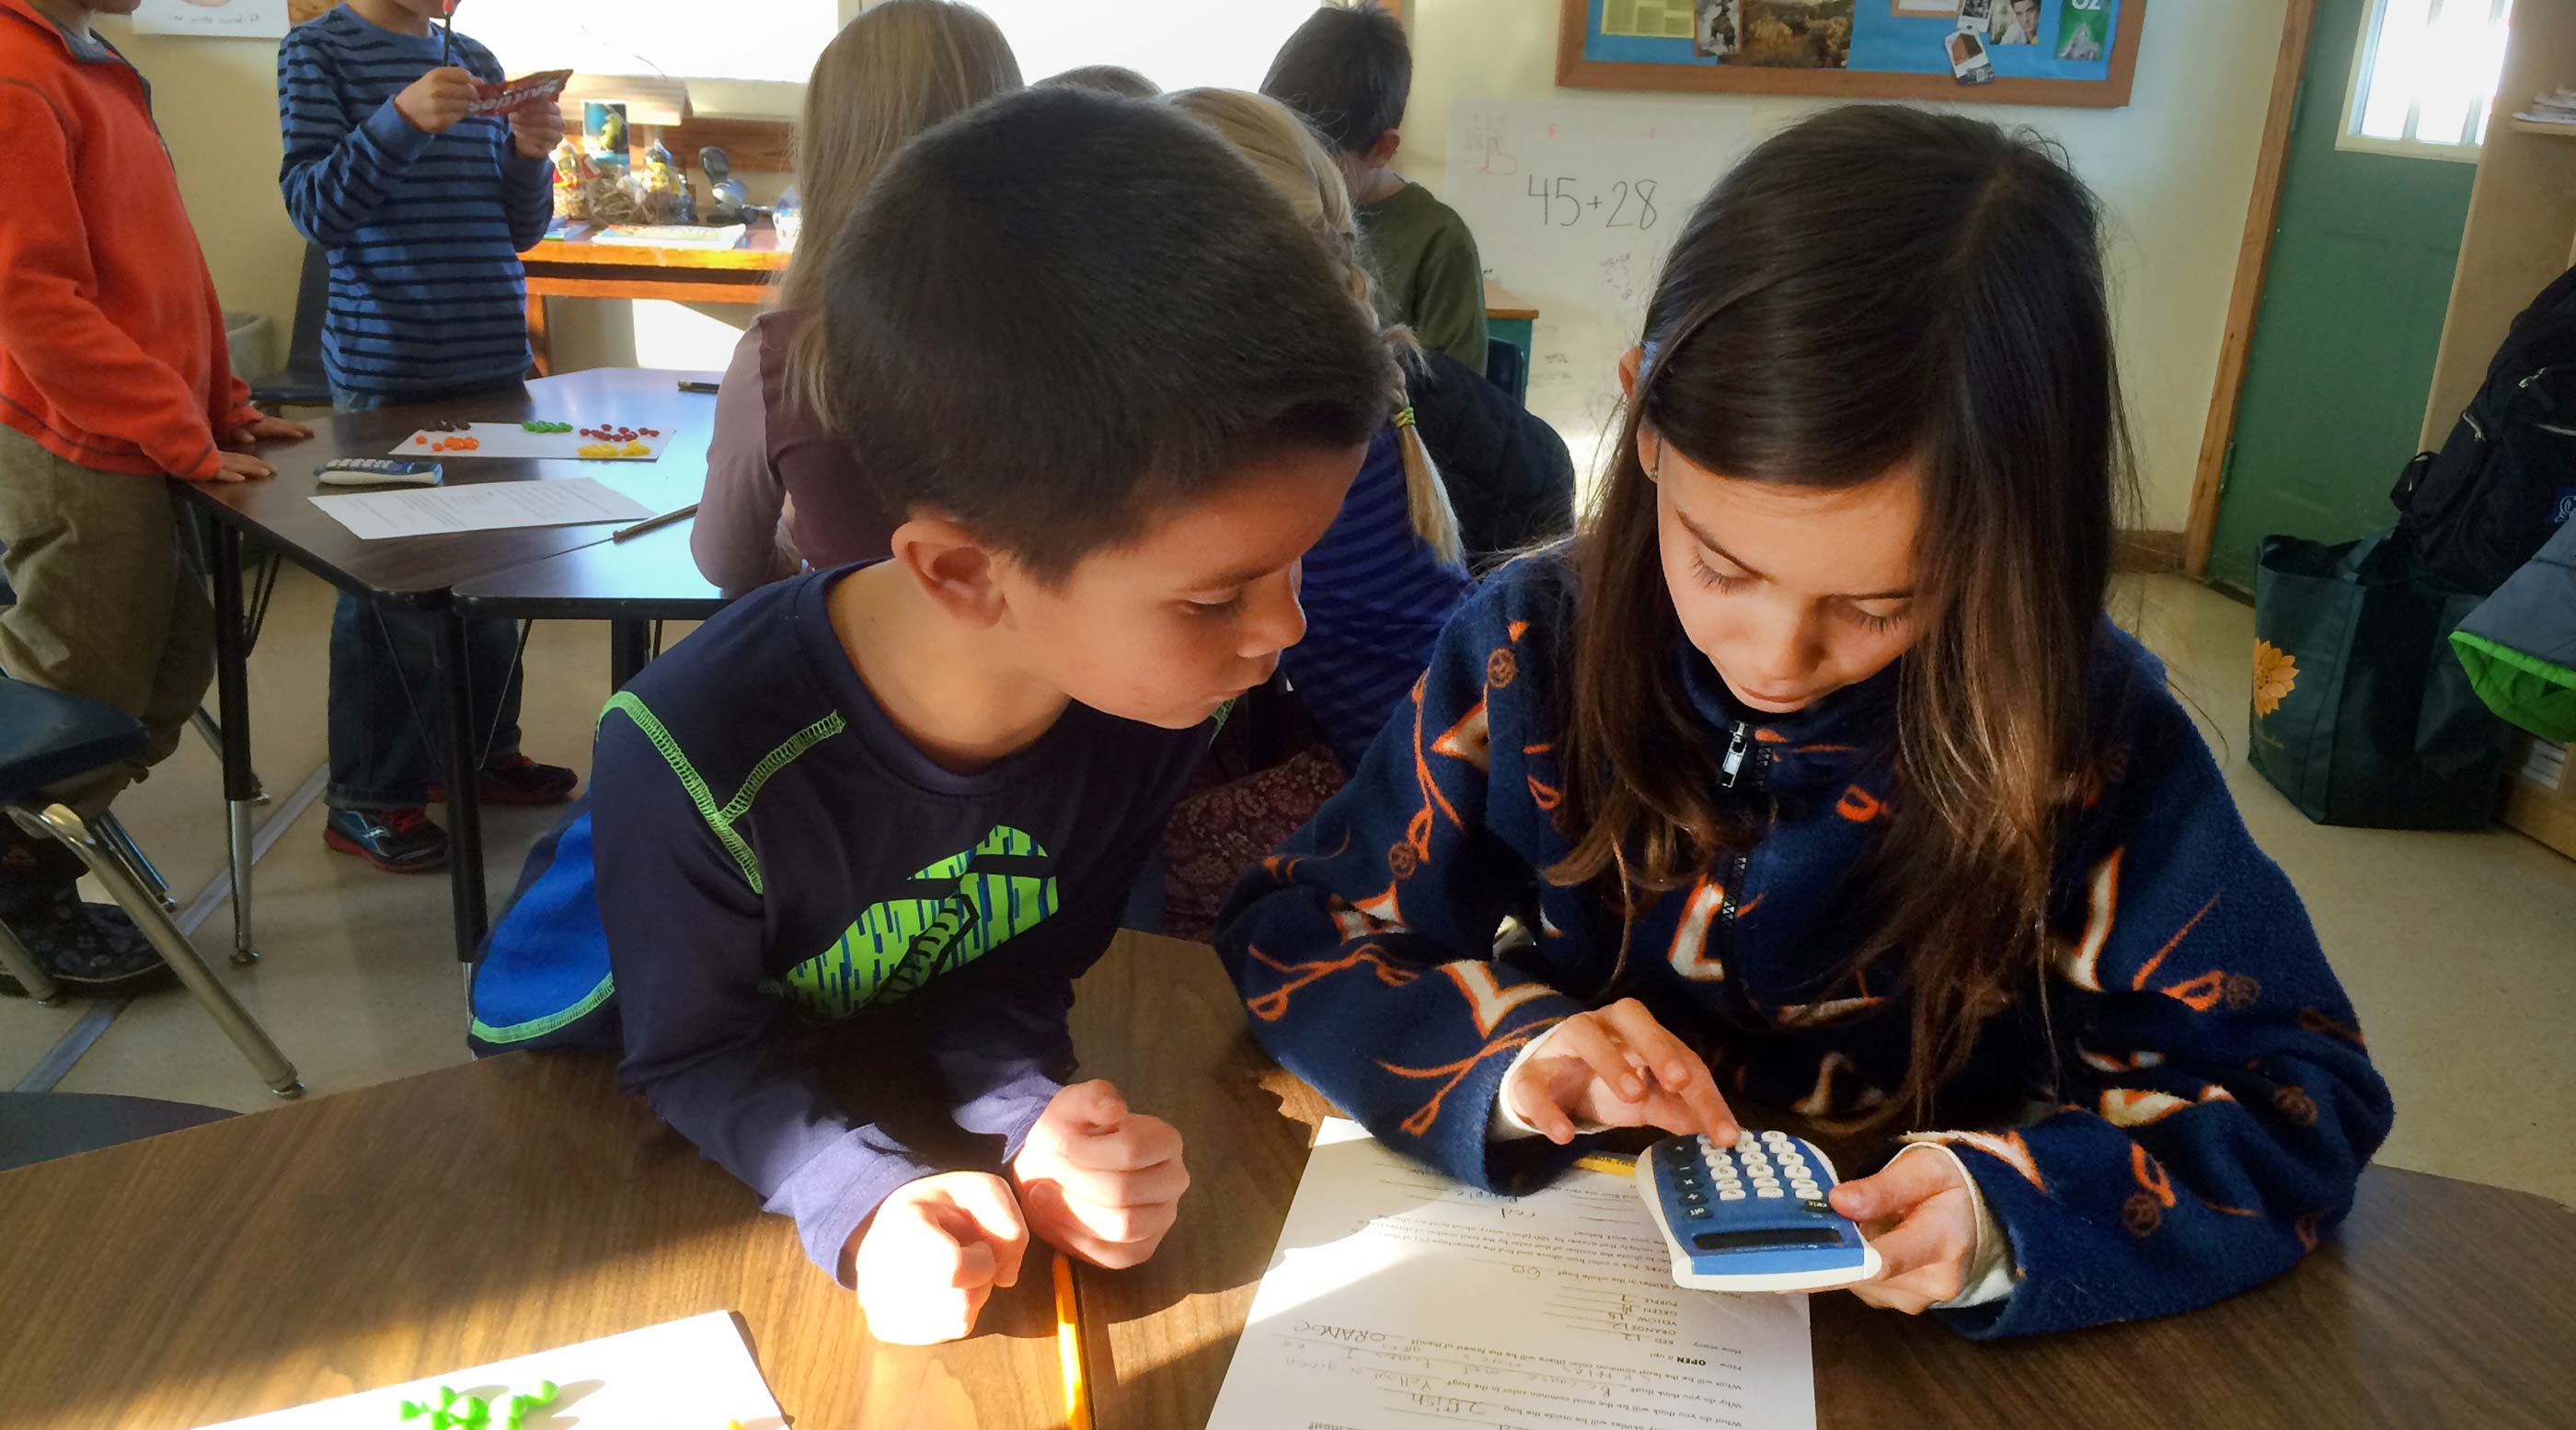 Two students work together on math using a calculator and candies